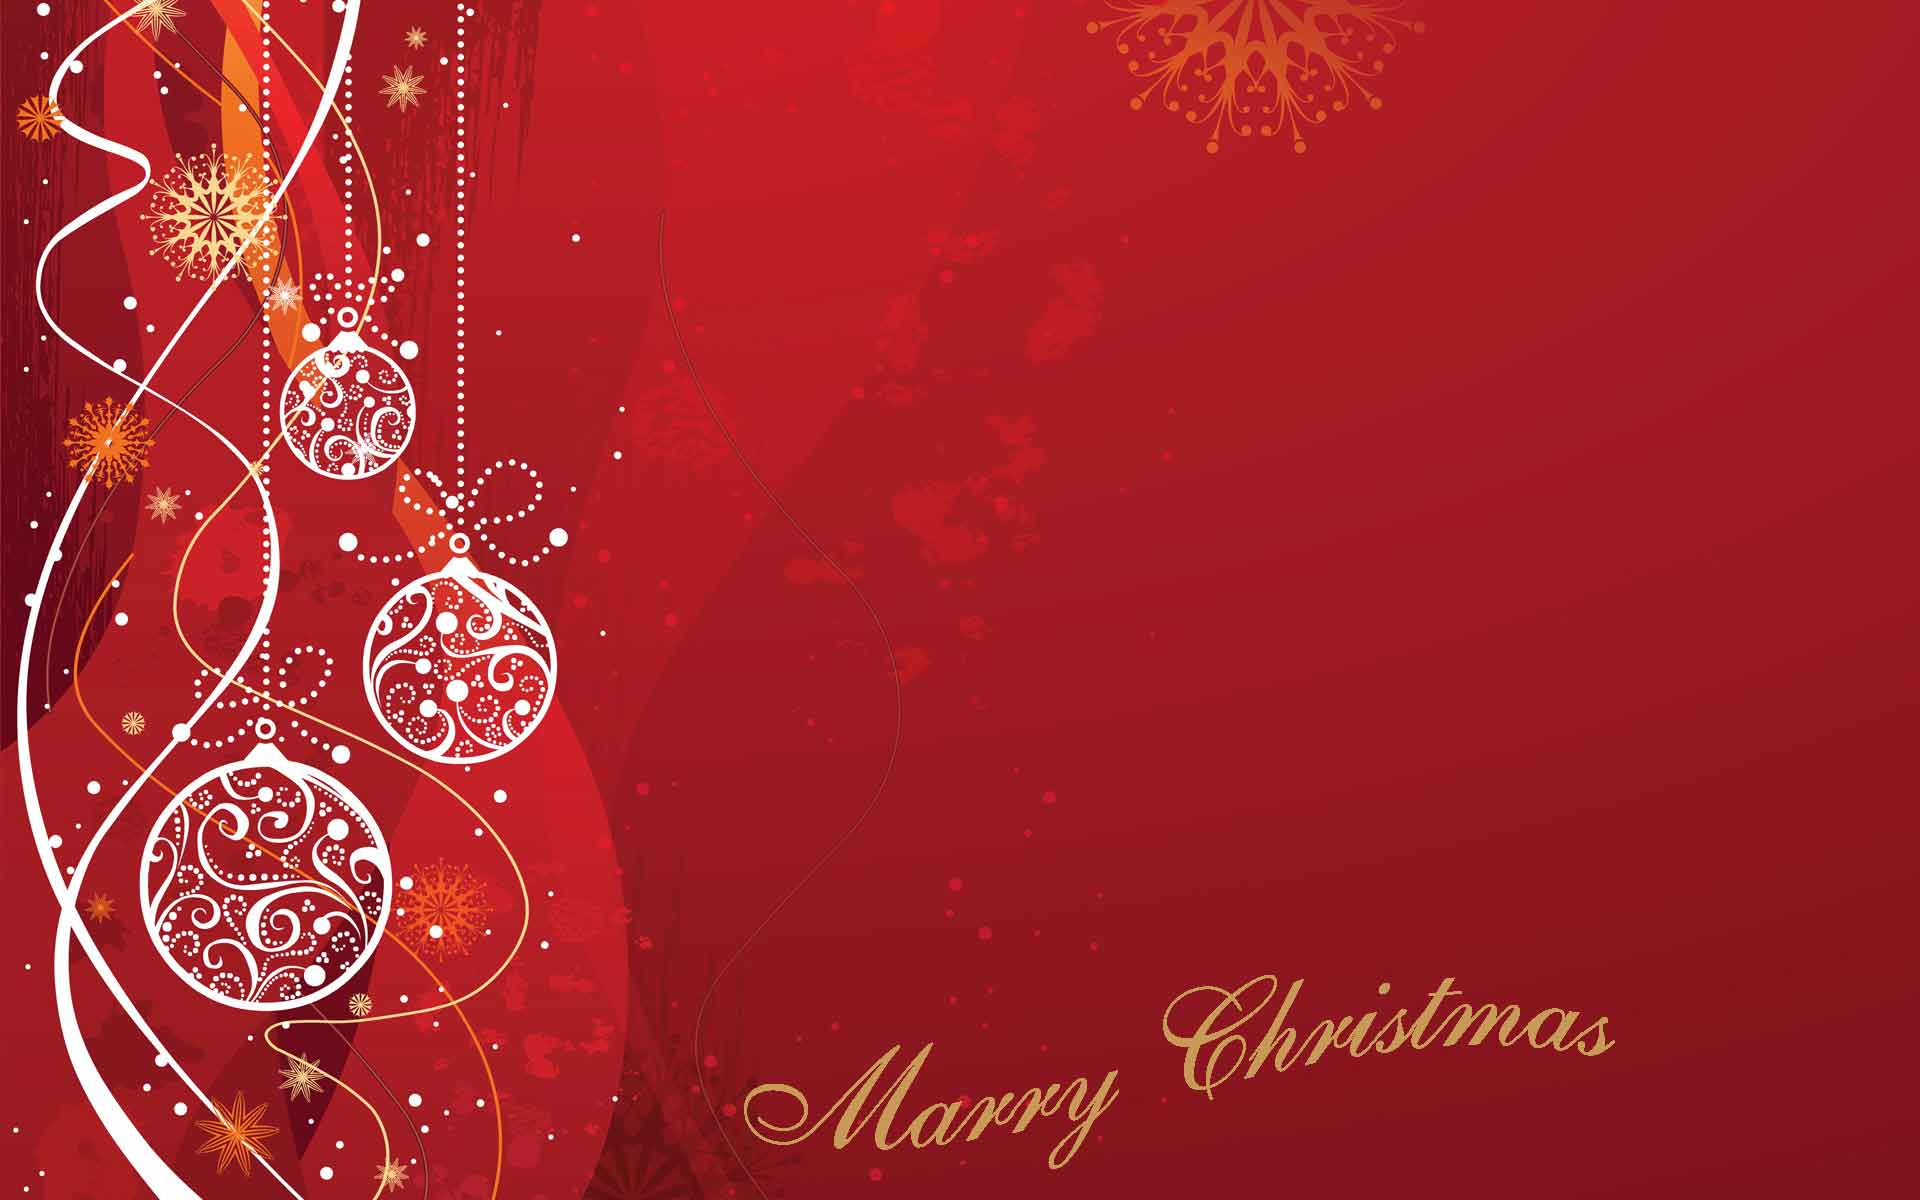 99 Free Christmas Card Templates For Email in Photoshop by Christmas Card Templates For Email